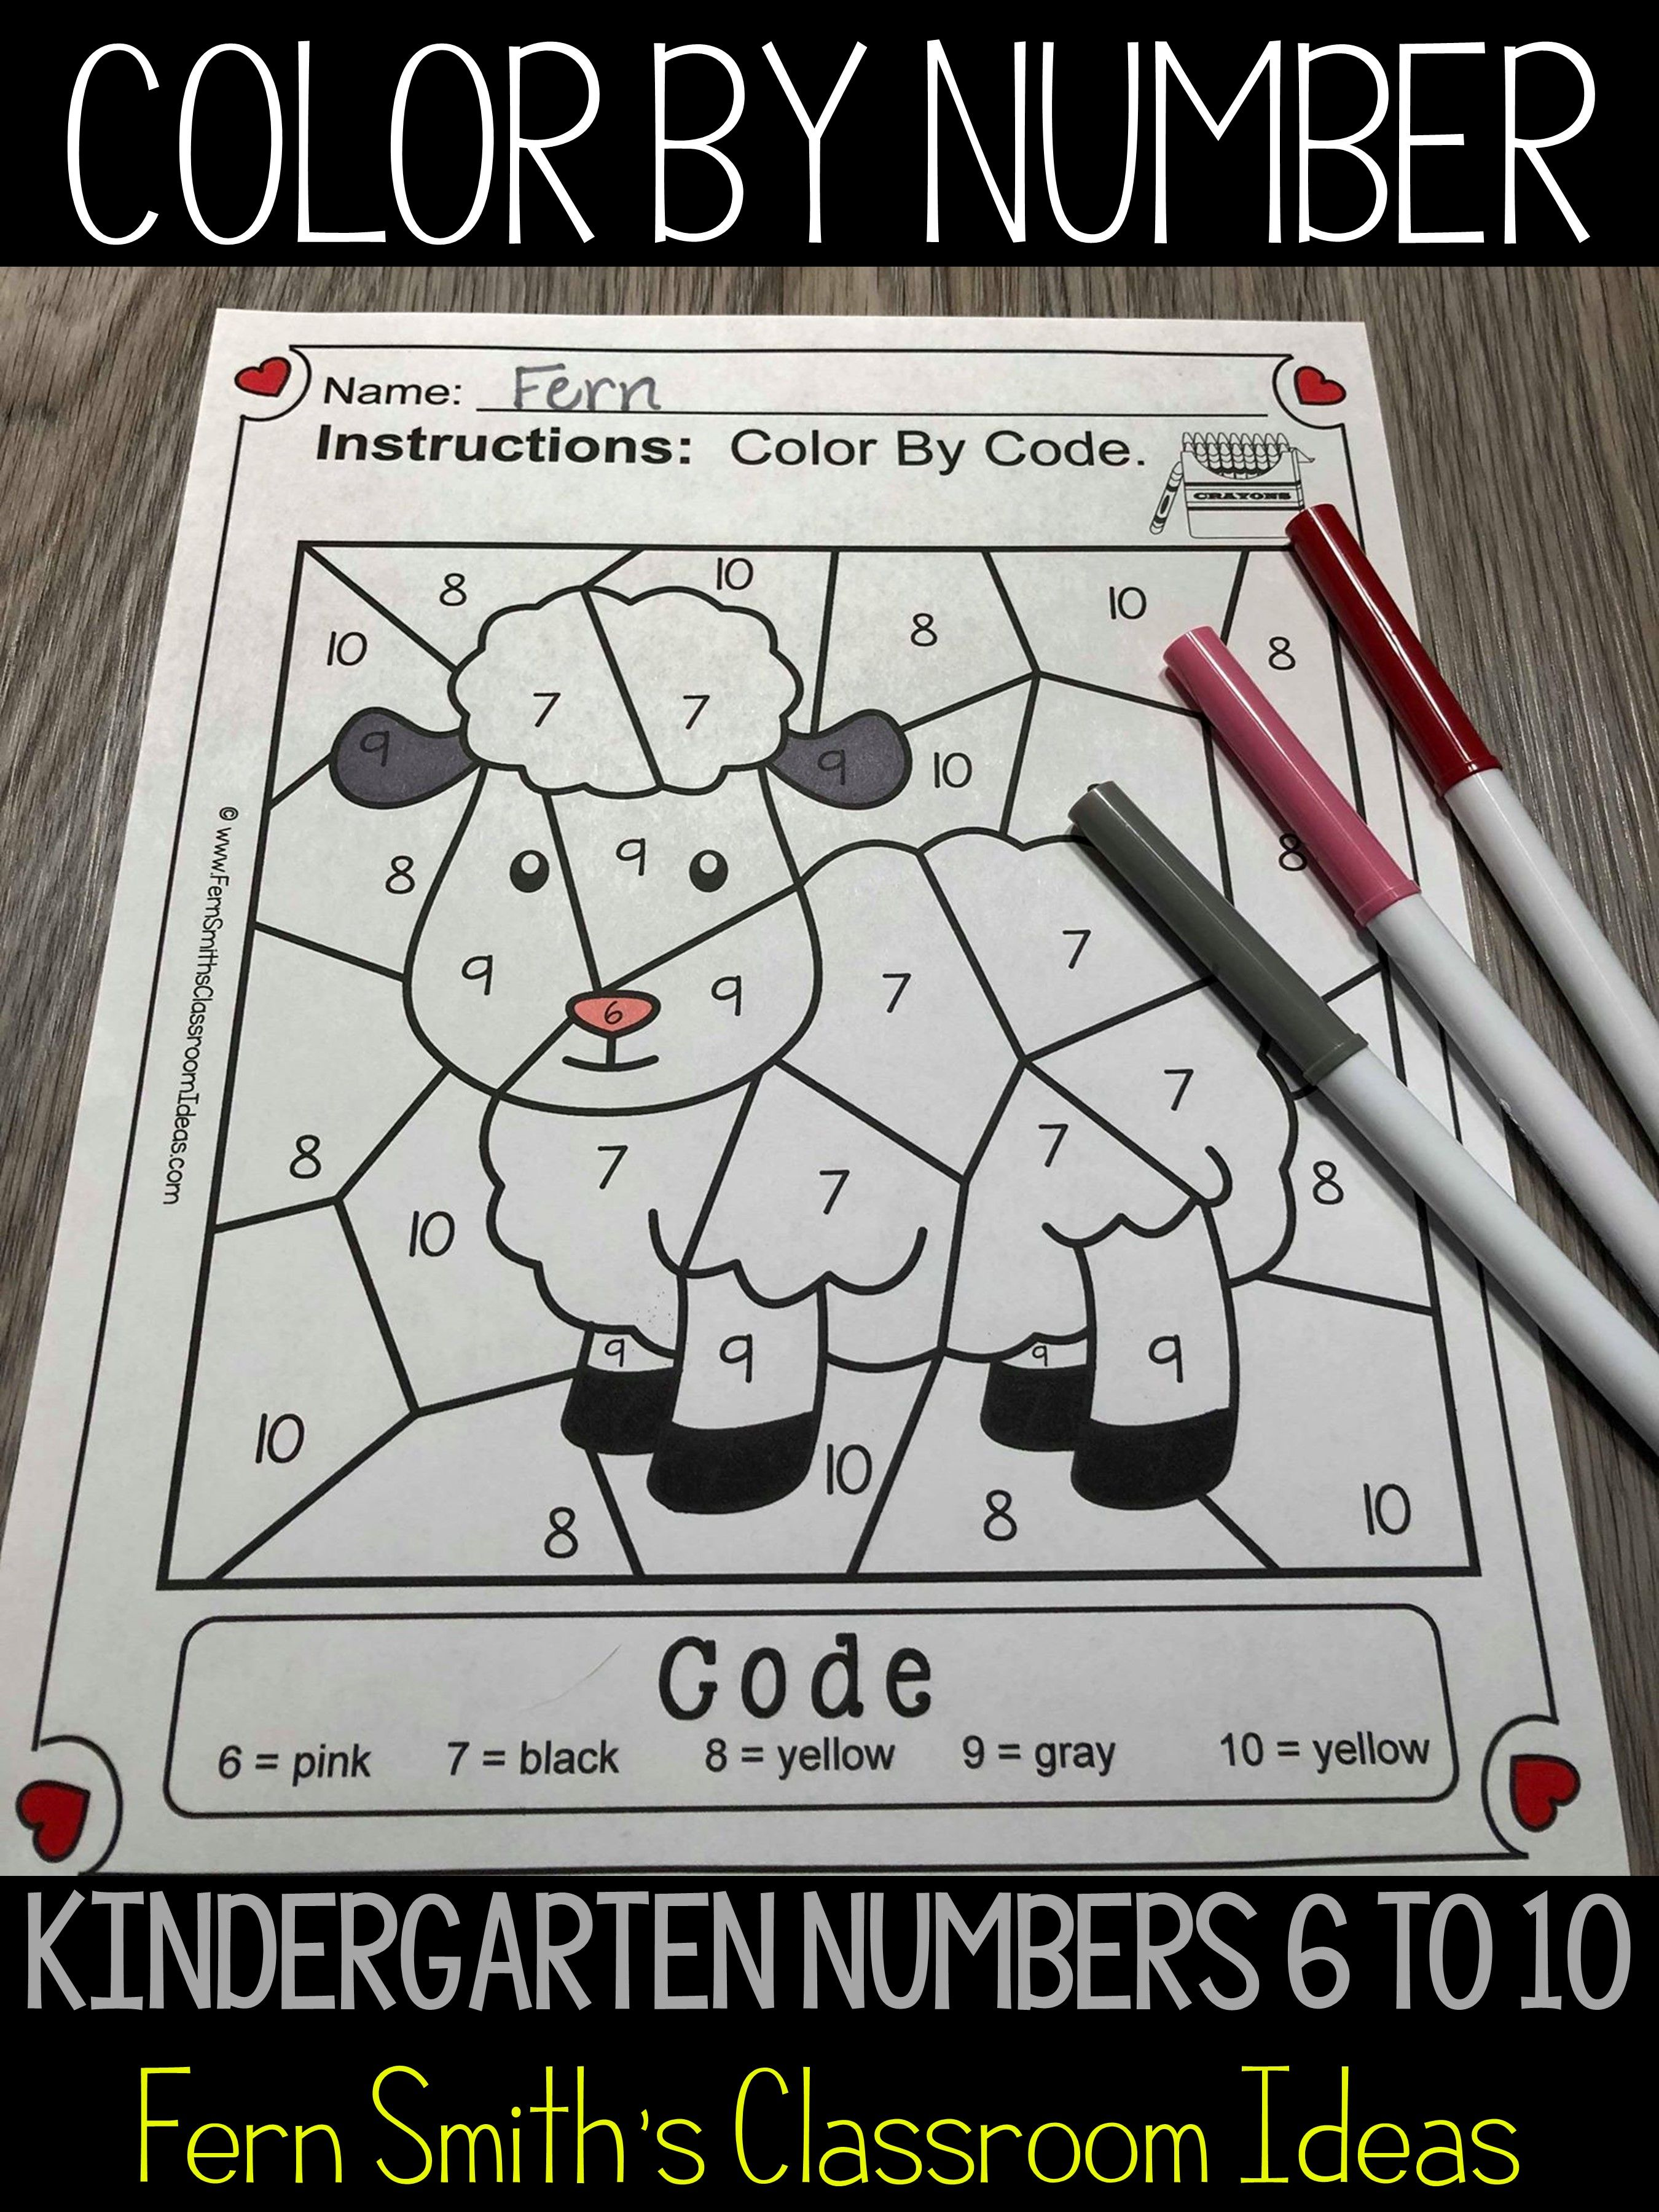 Color By Number For Math Remediation Numbers 6 To 10 Baa